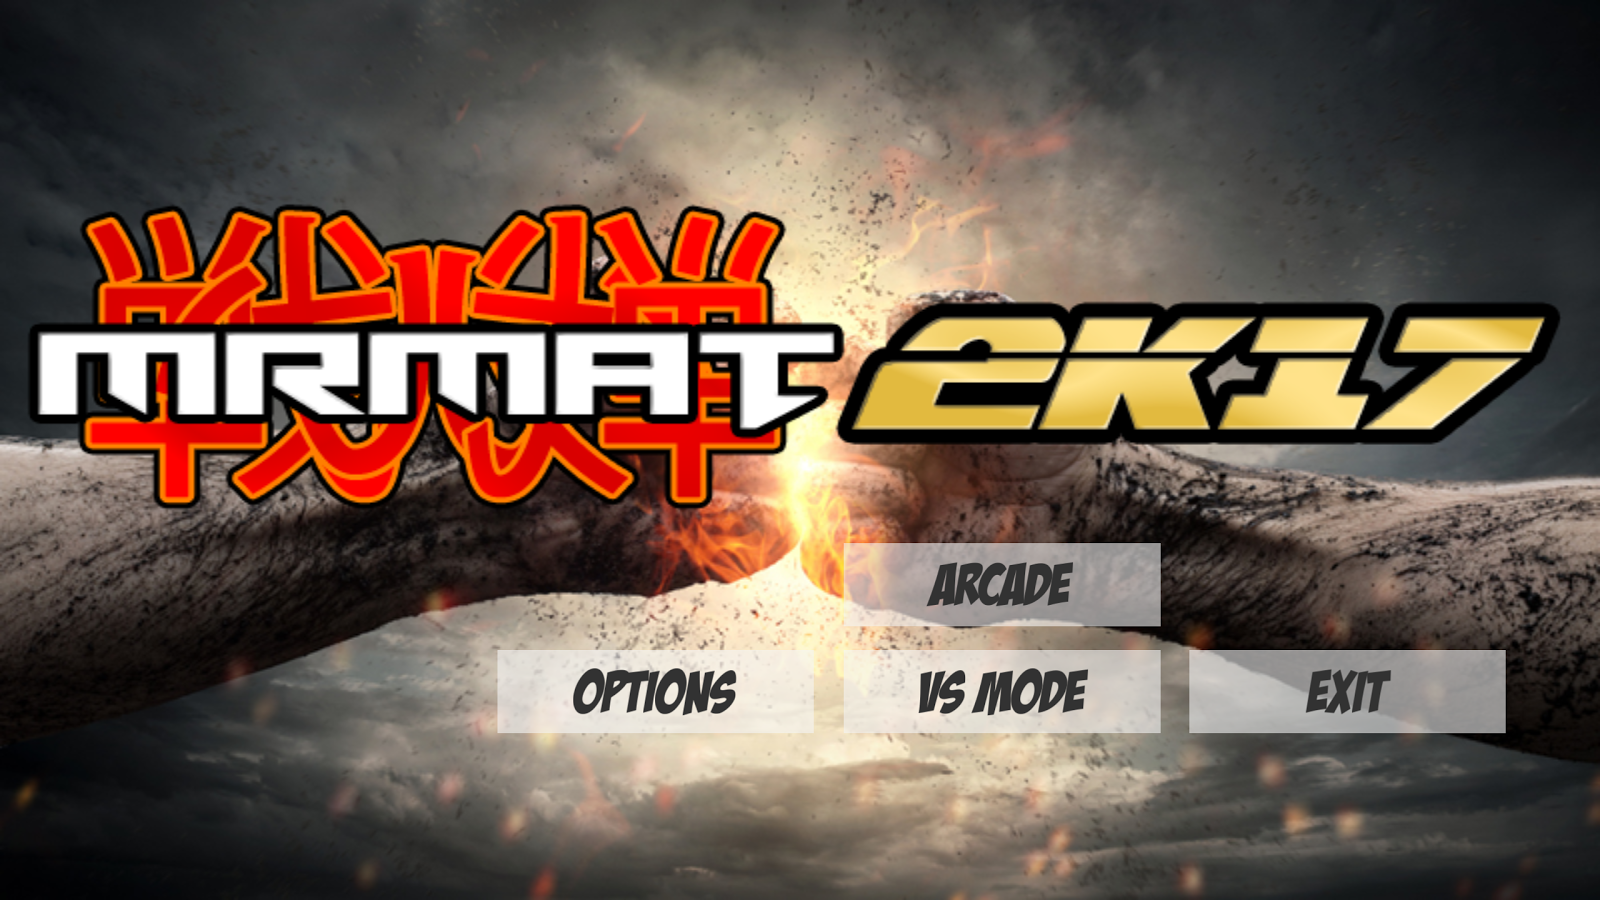 MRMAT 2K17 android spiele download